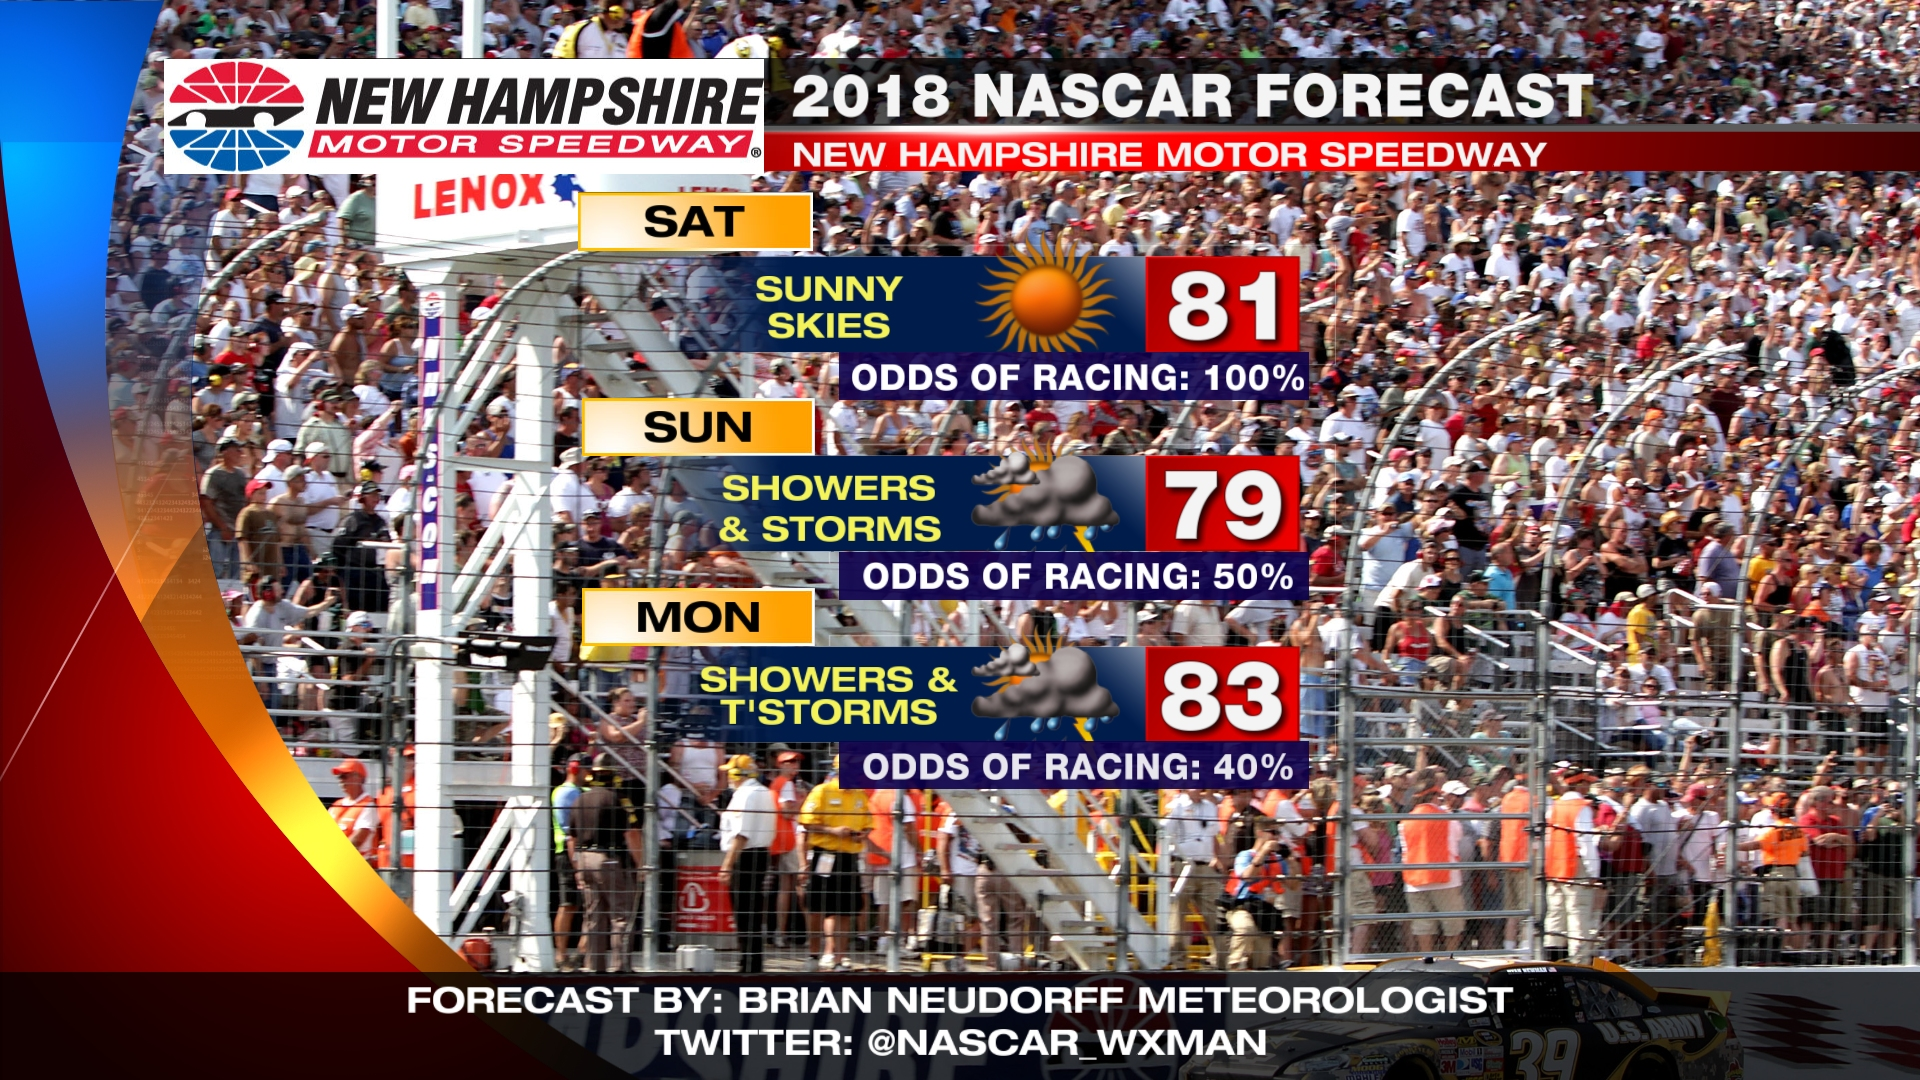 There appears to be some good and bad when it comes to the NASCAR Monster Energy weather forecast Sunday at New Hampshire Motor Speedway.